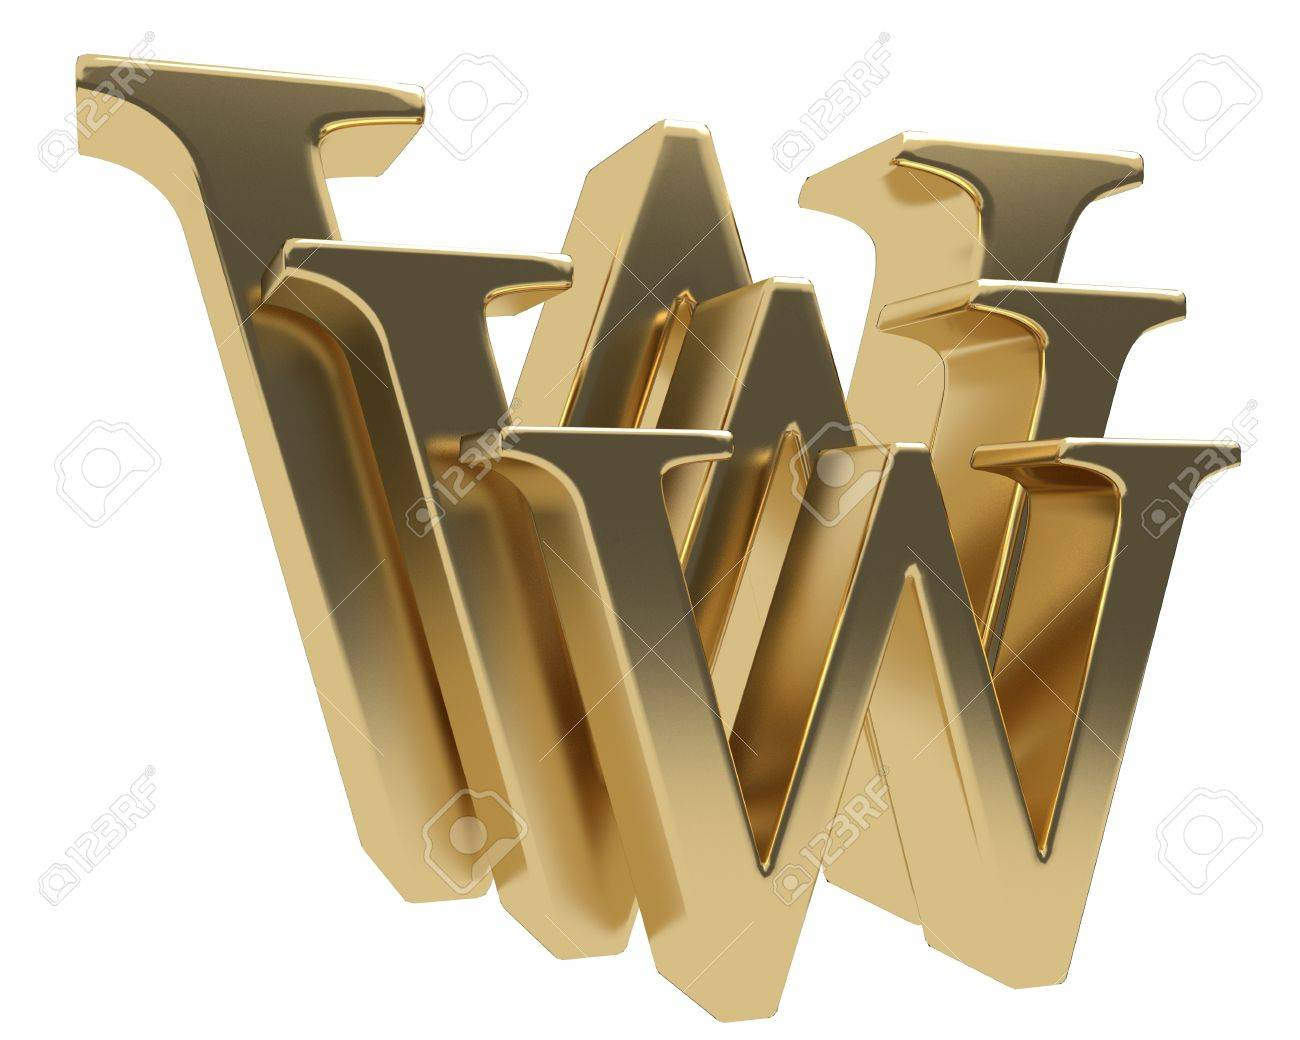 World wide web www glossy gold letter symbol isolated on white background Stock Photo - 20119606